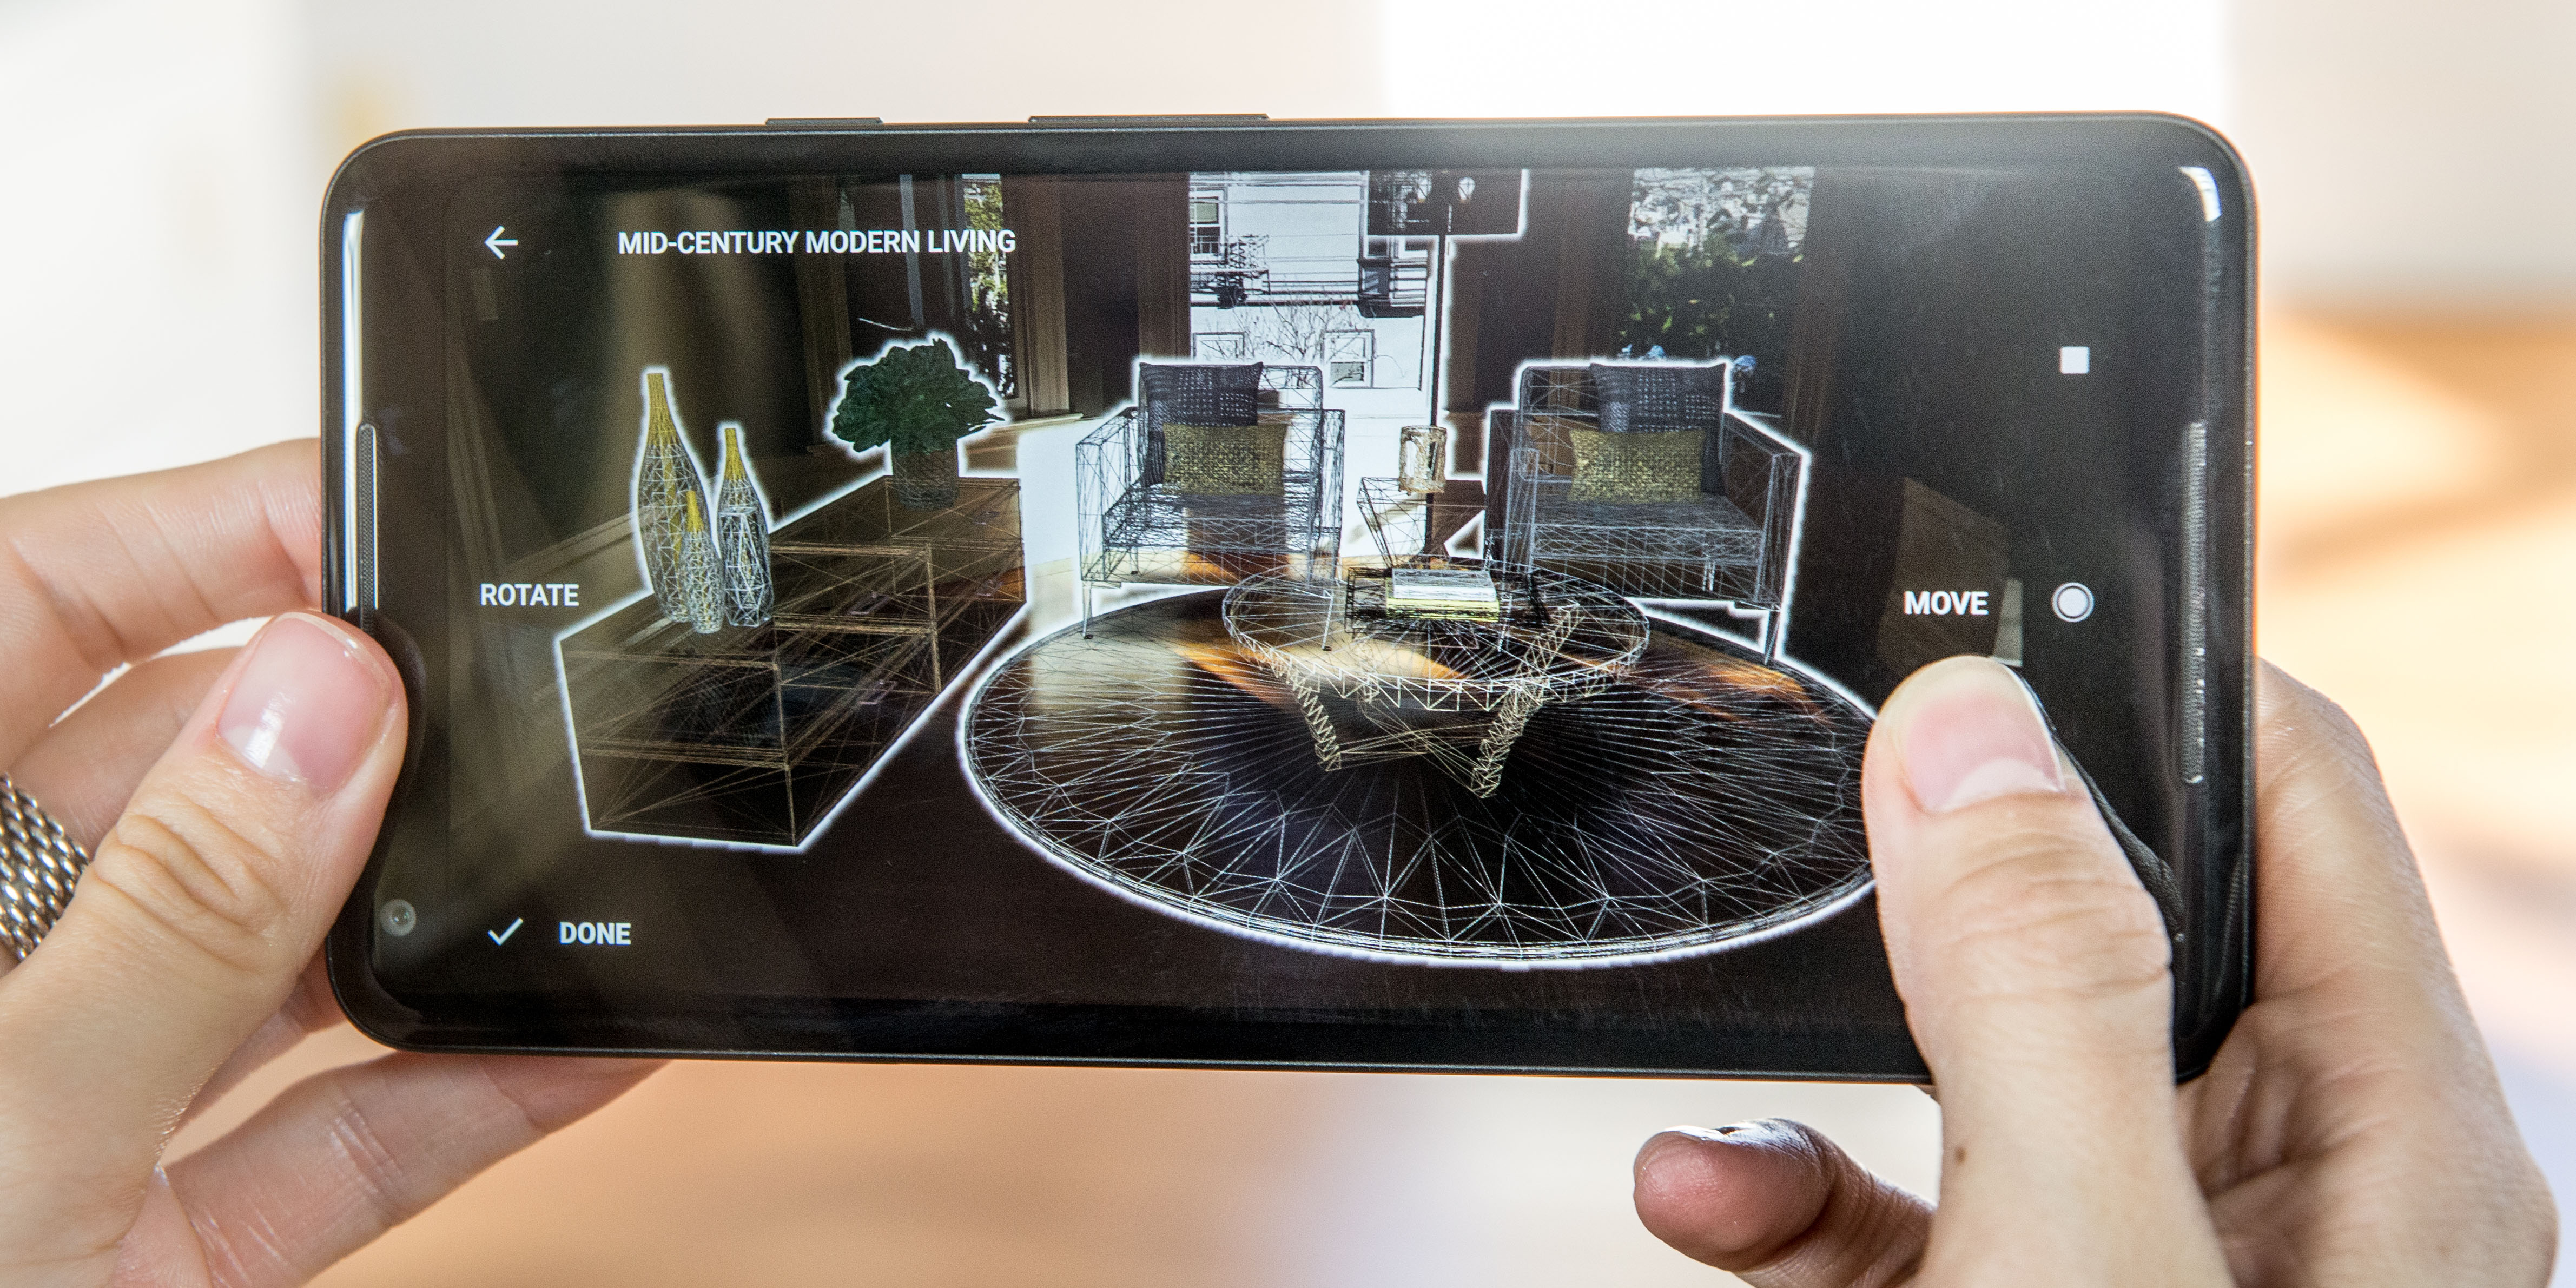 Sotheby's debuts augmented reality home staging app using Google ARCore